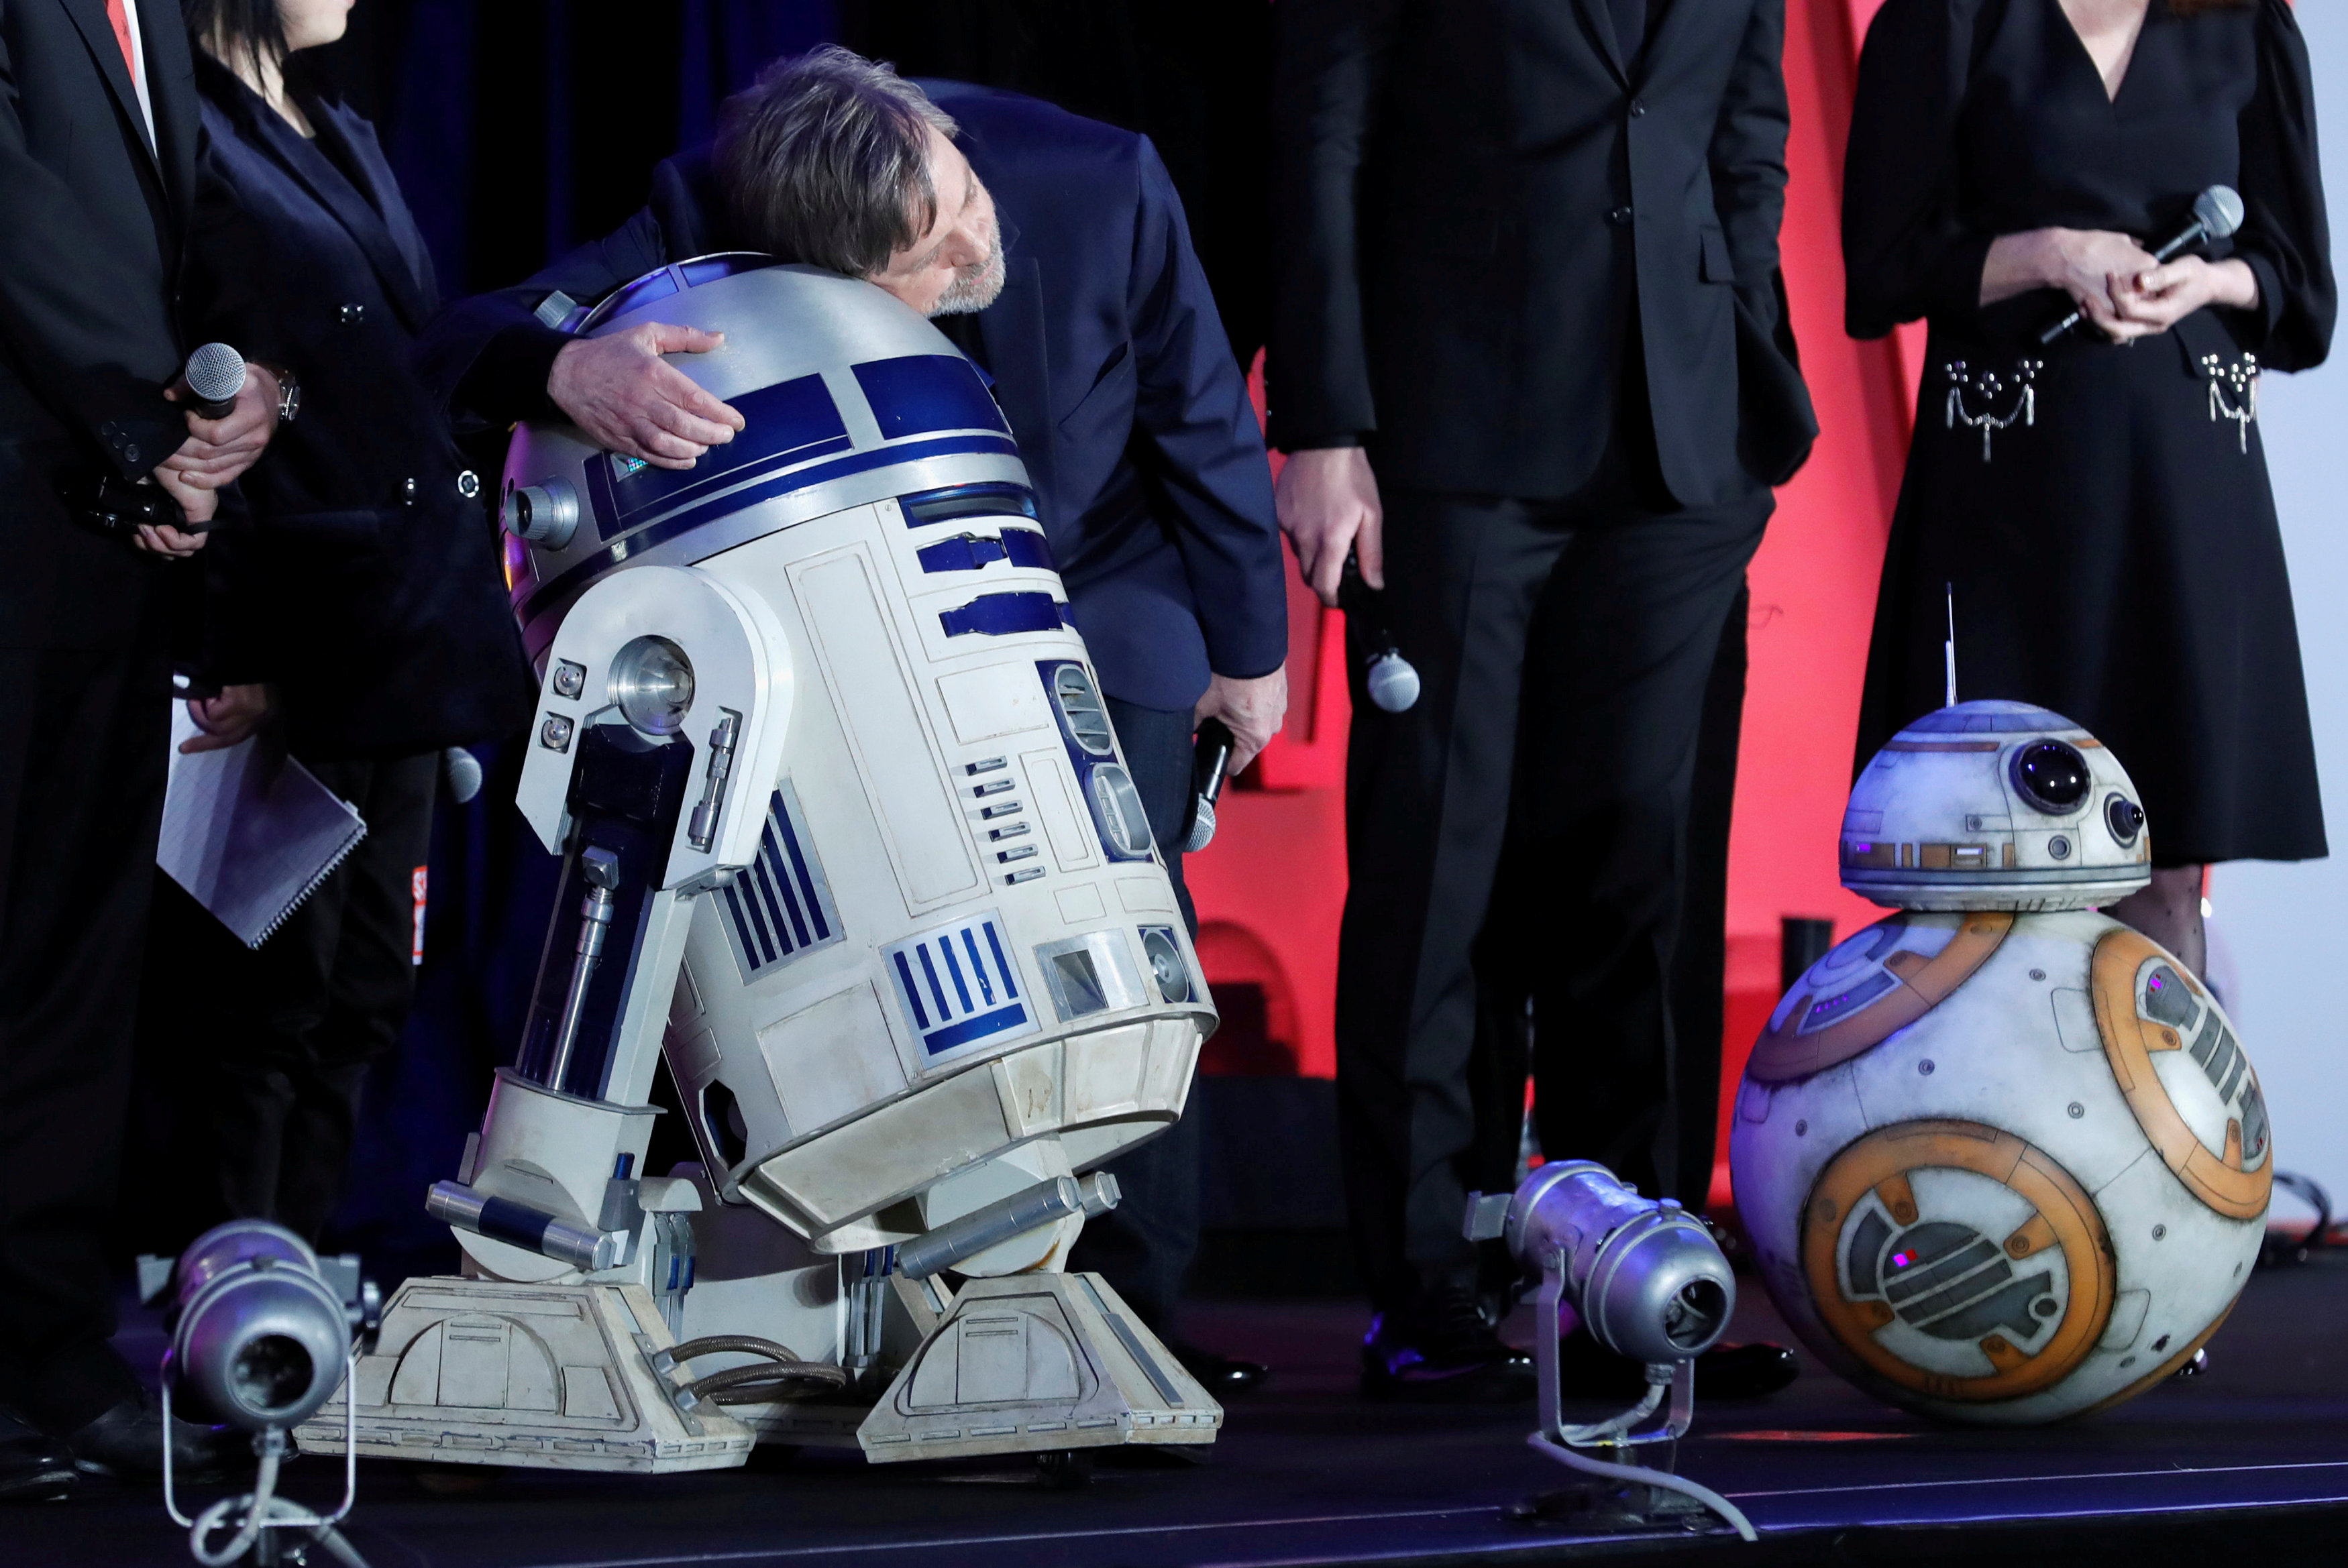 Mark Hamill, who plays Luke Skywalker in the Star Wars, series hugs R2D2 at an event promoting...